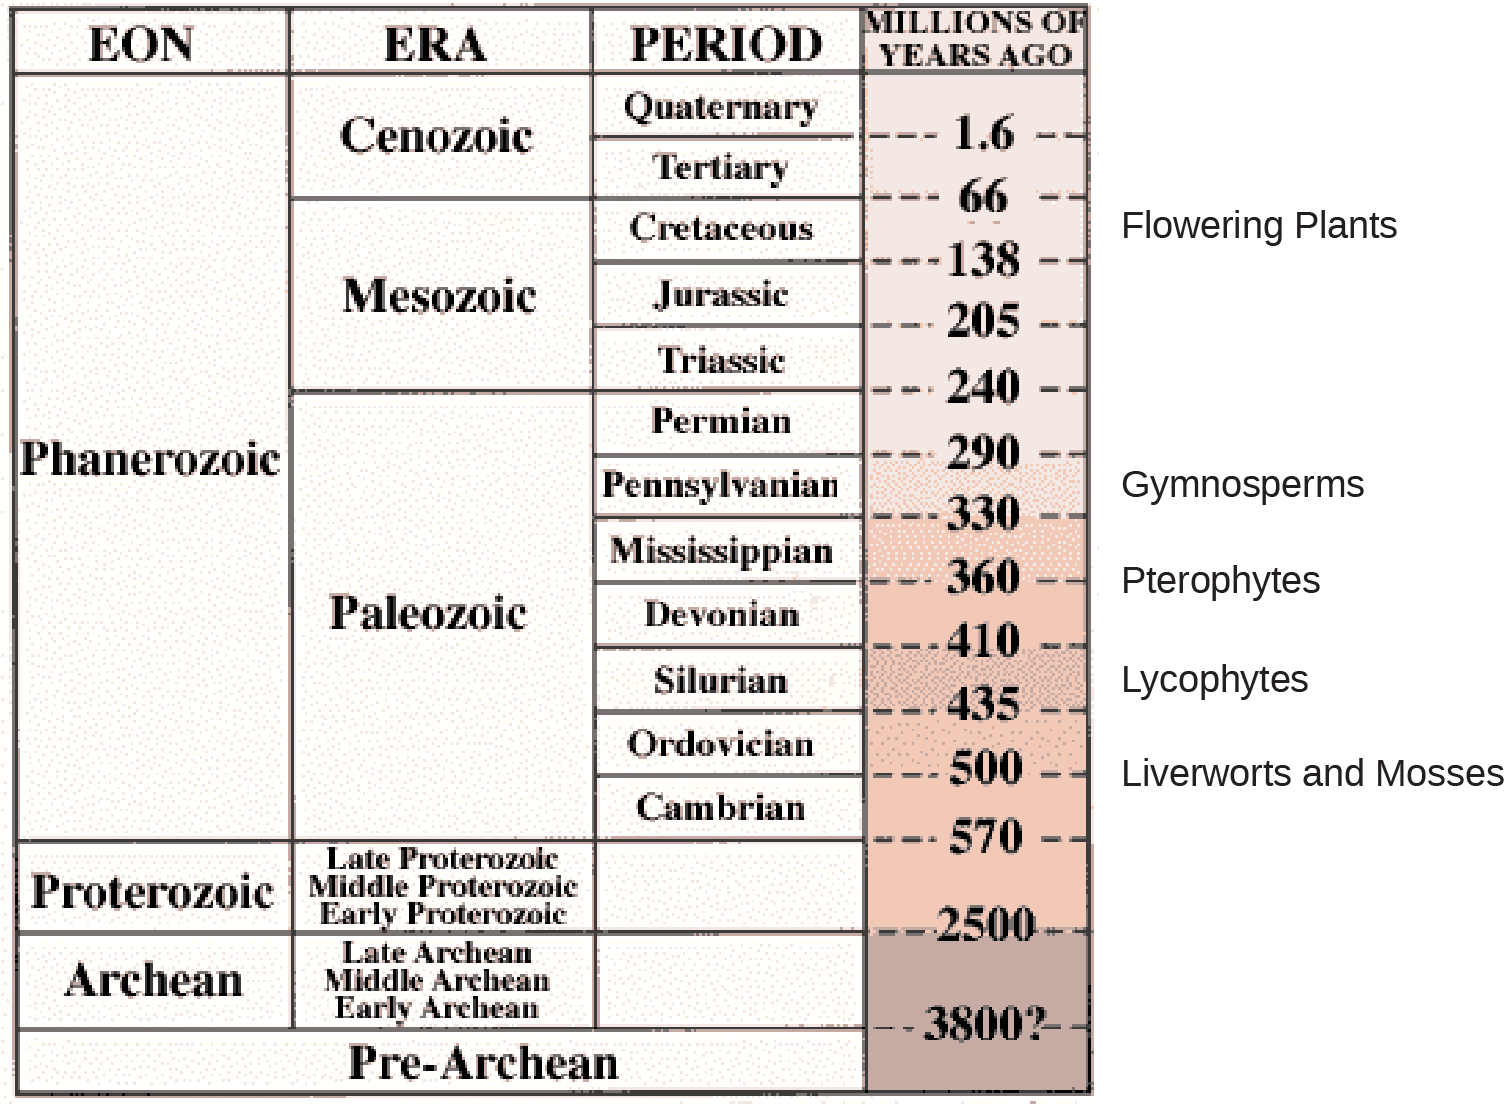 Image is of a table showing a timeline of geological eons and eras. PreArchaen eon. occurs more than 3.8 billion years ago. Archean eon. occurs more than 2.5 billion years ago. Proterzoic eon occurs between 570 million and 2.5 billion years ago. The most recent eon, the Phanerozoic began 570 million years ago. Within it, the liverworts and mosses appeared about 500 million years ago, at the end of the Cambrian period in the Paleozoic era. Ther lycophytes developed about 400 million years ago during the silurian period.  Pterophytes about 360 million years ago at the start of the Mississippian period. Gymnosperms about 290 million years ago during the Pennsylvanian period. All of these remained in the Paleozoic era. In the subequent era, the Mezozoic, Flowering Plants appeared about 70 million years ago during the Cretacious period.